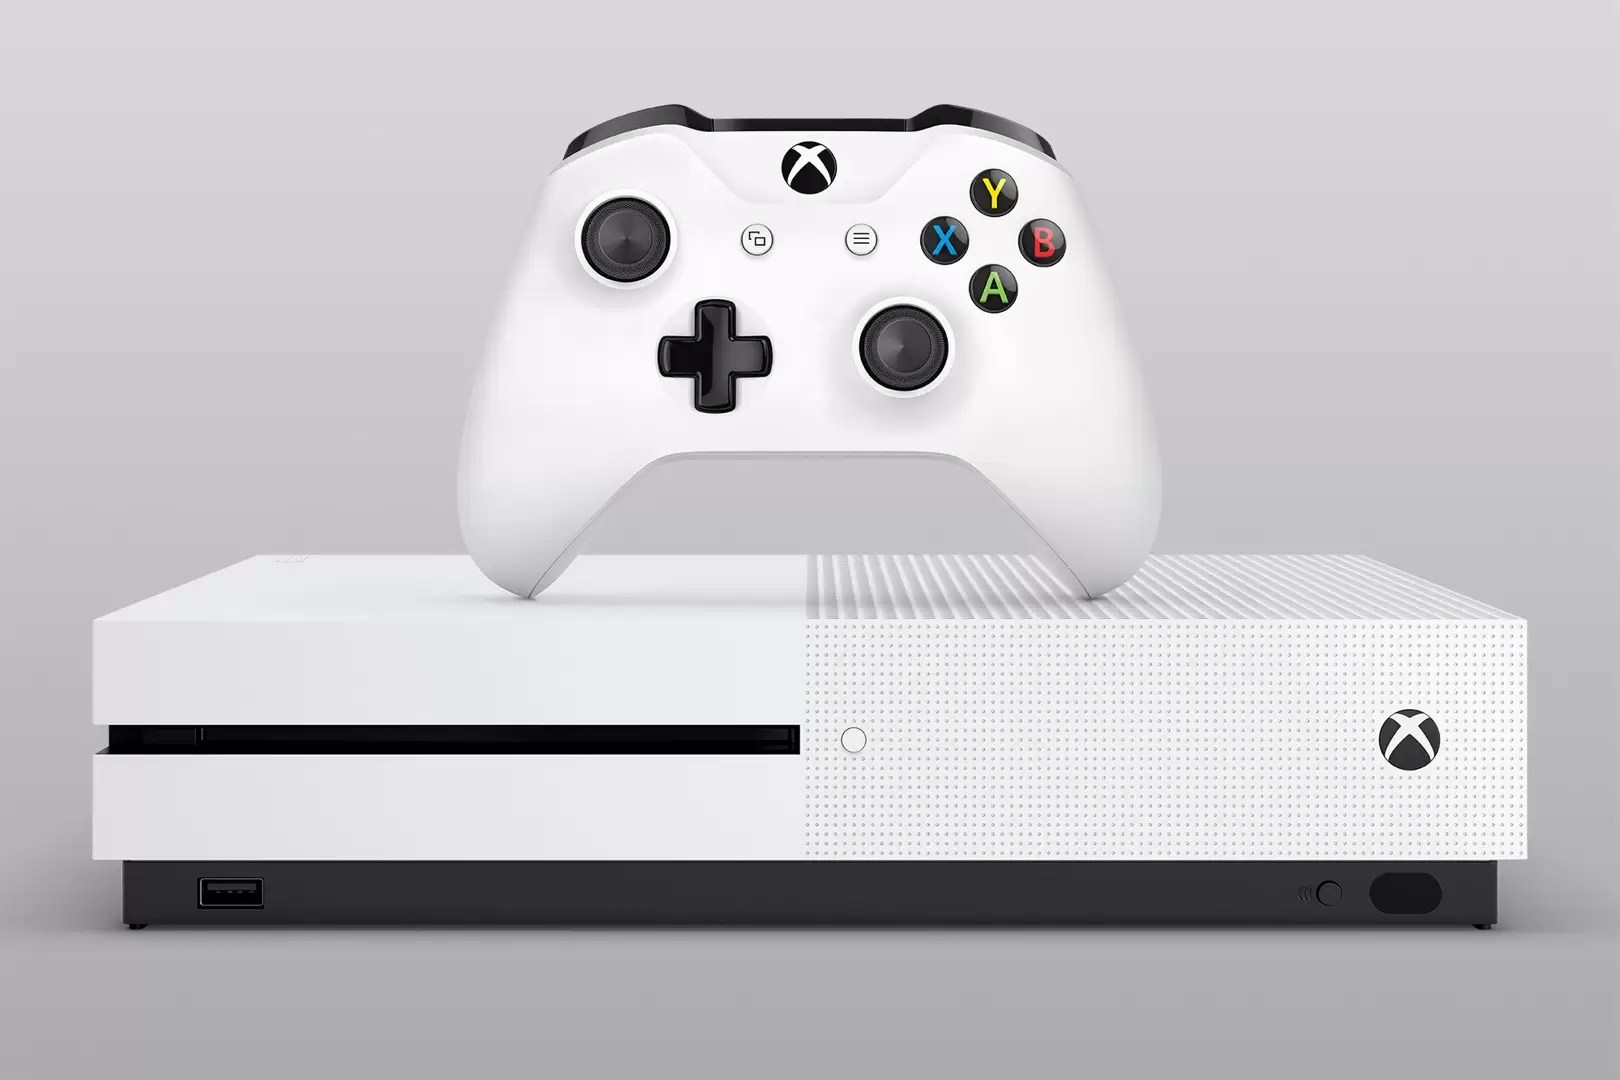 hight resolution of how microsoft redesigned the slimline xbox one s wired uk xbox one airflow diagram